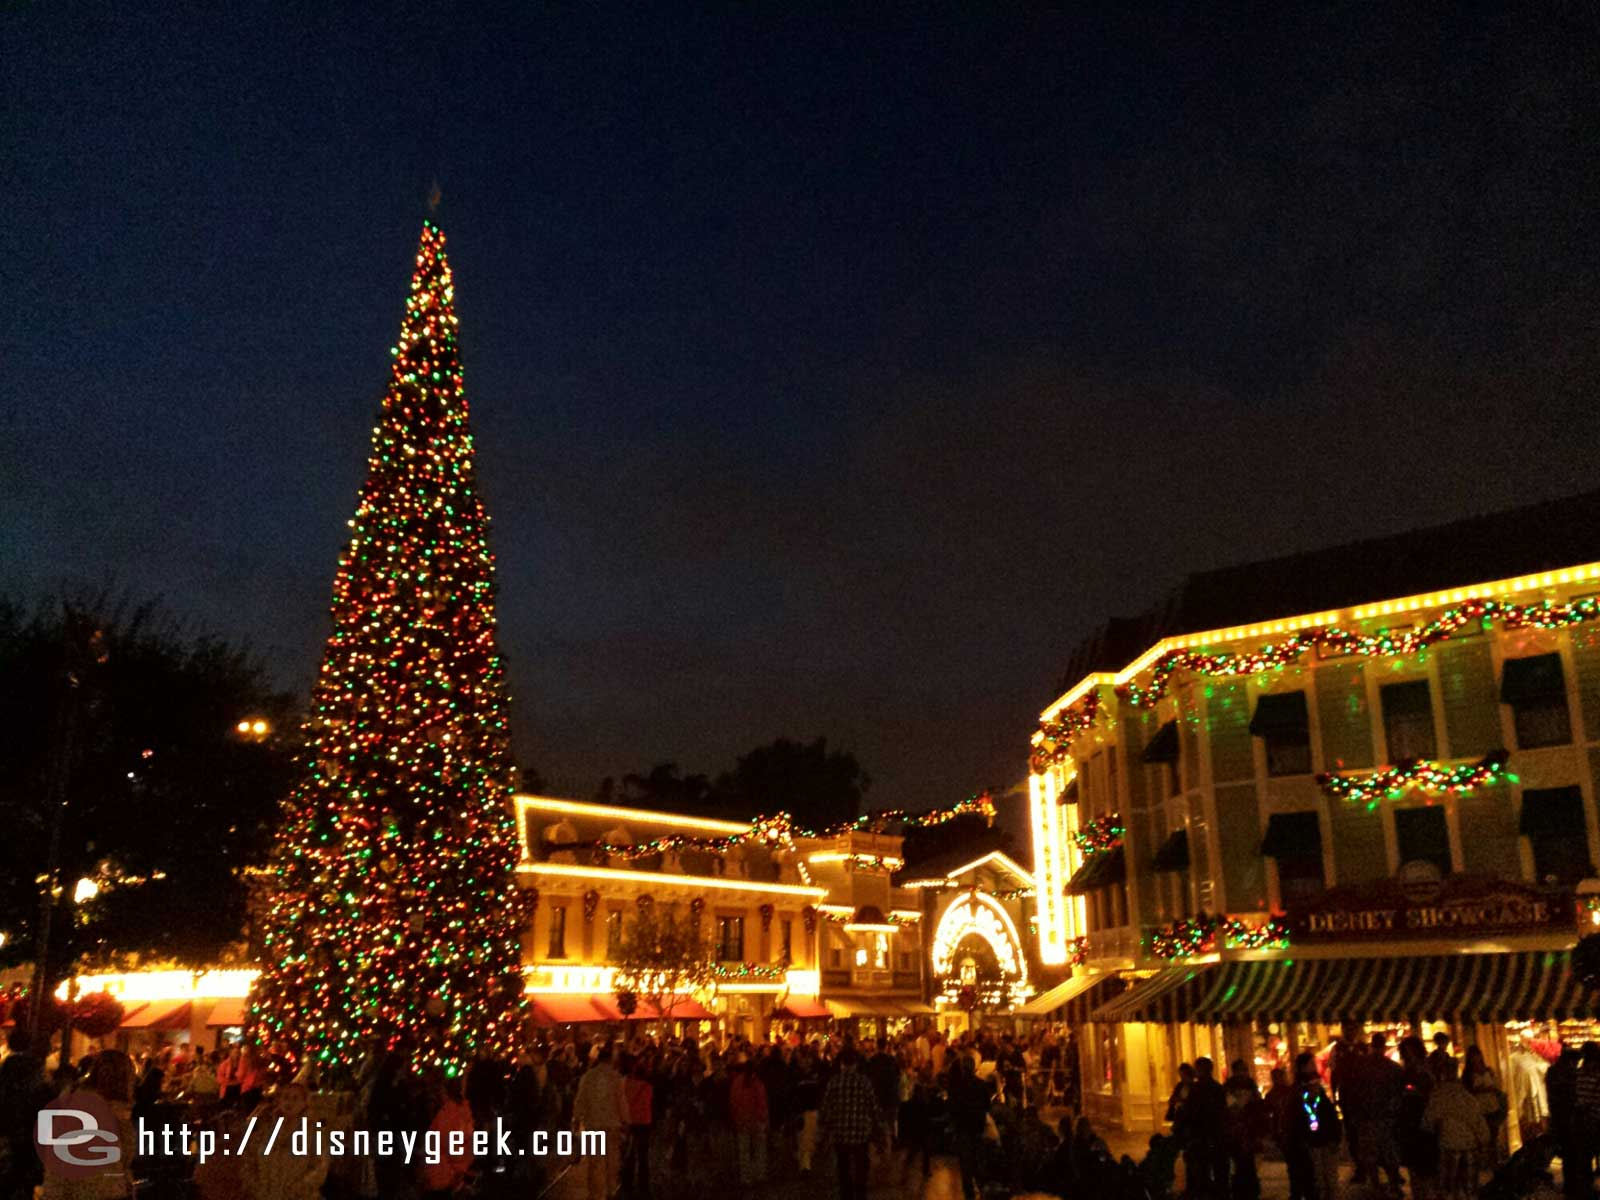 #Disneyland Town Square Christmas Tree